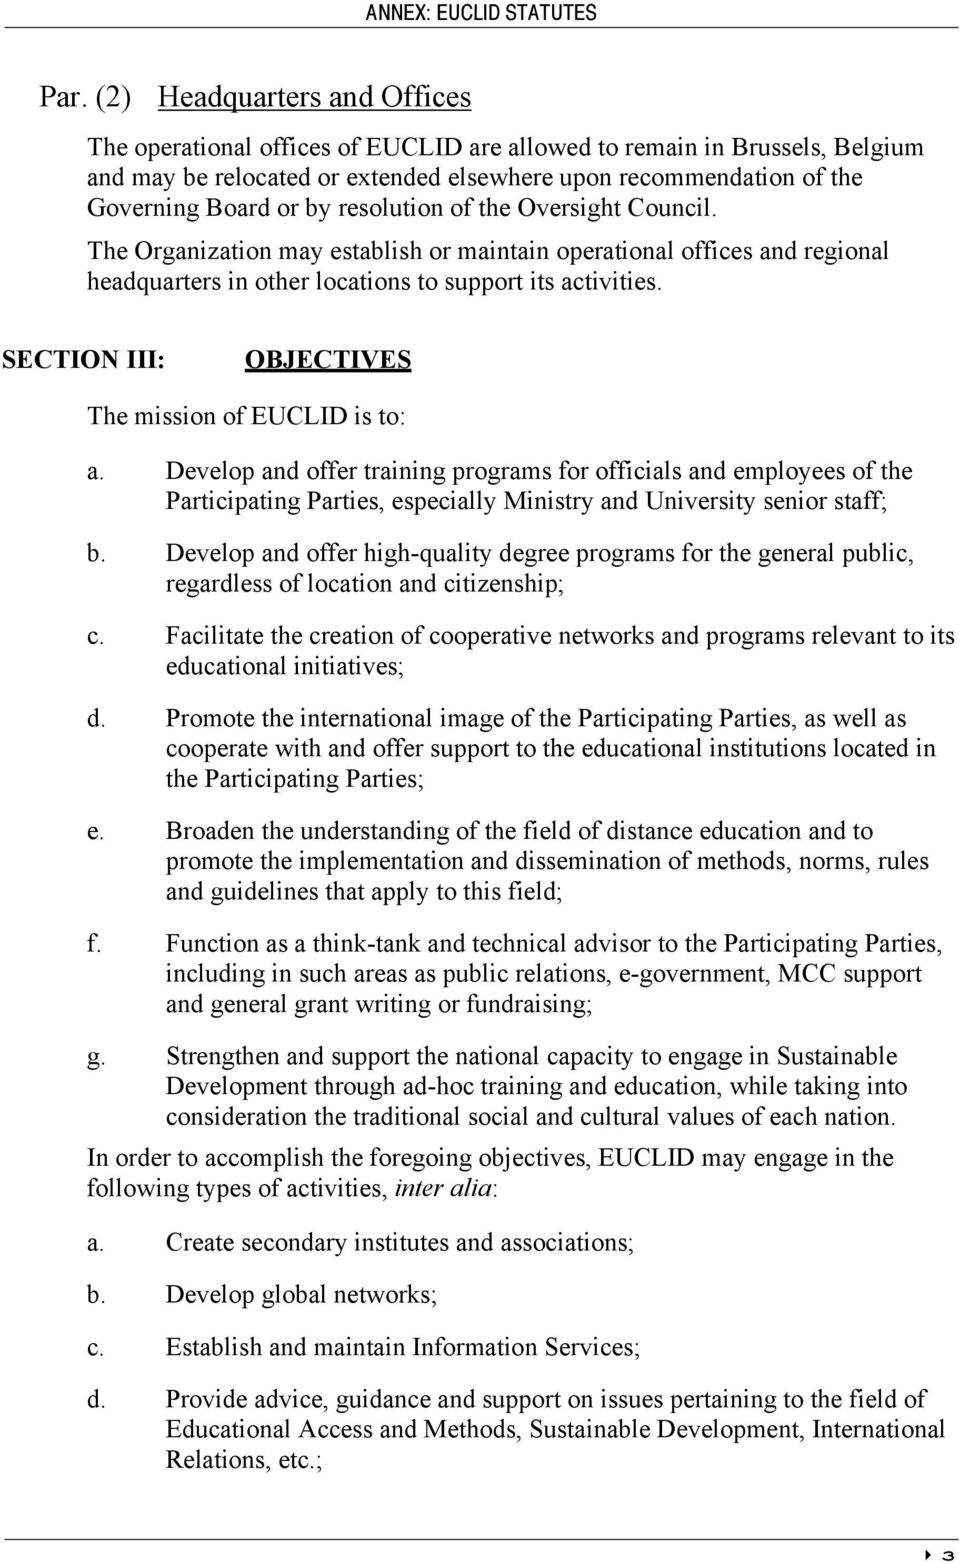 resolution of the Oversight Council. The Organization may establish or maintain operational offices and regional headquarters in other locations to support its activities.